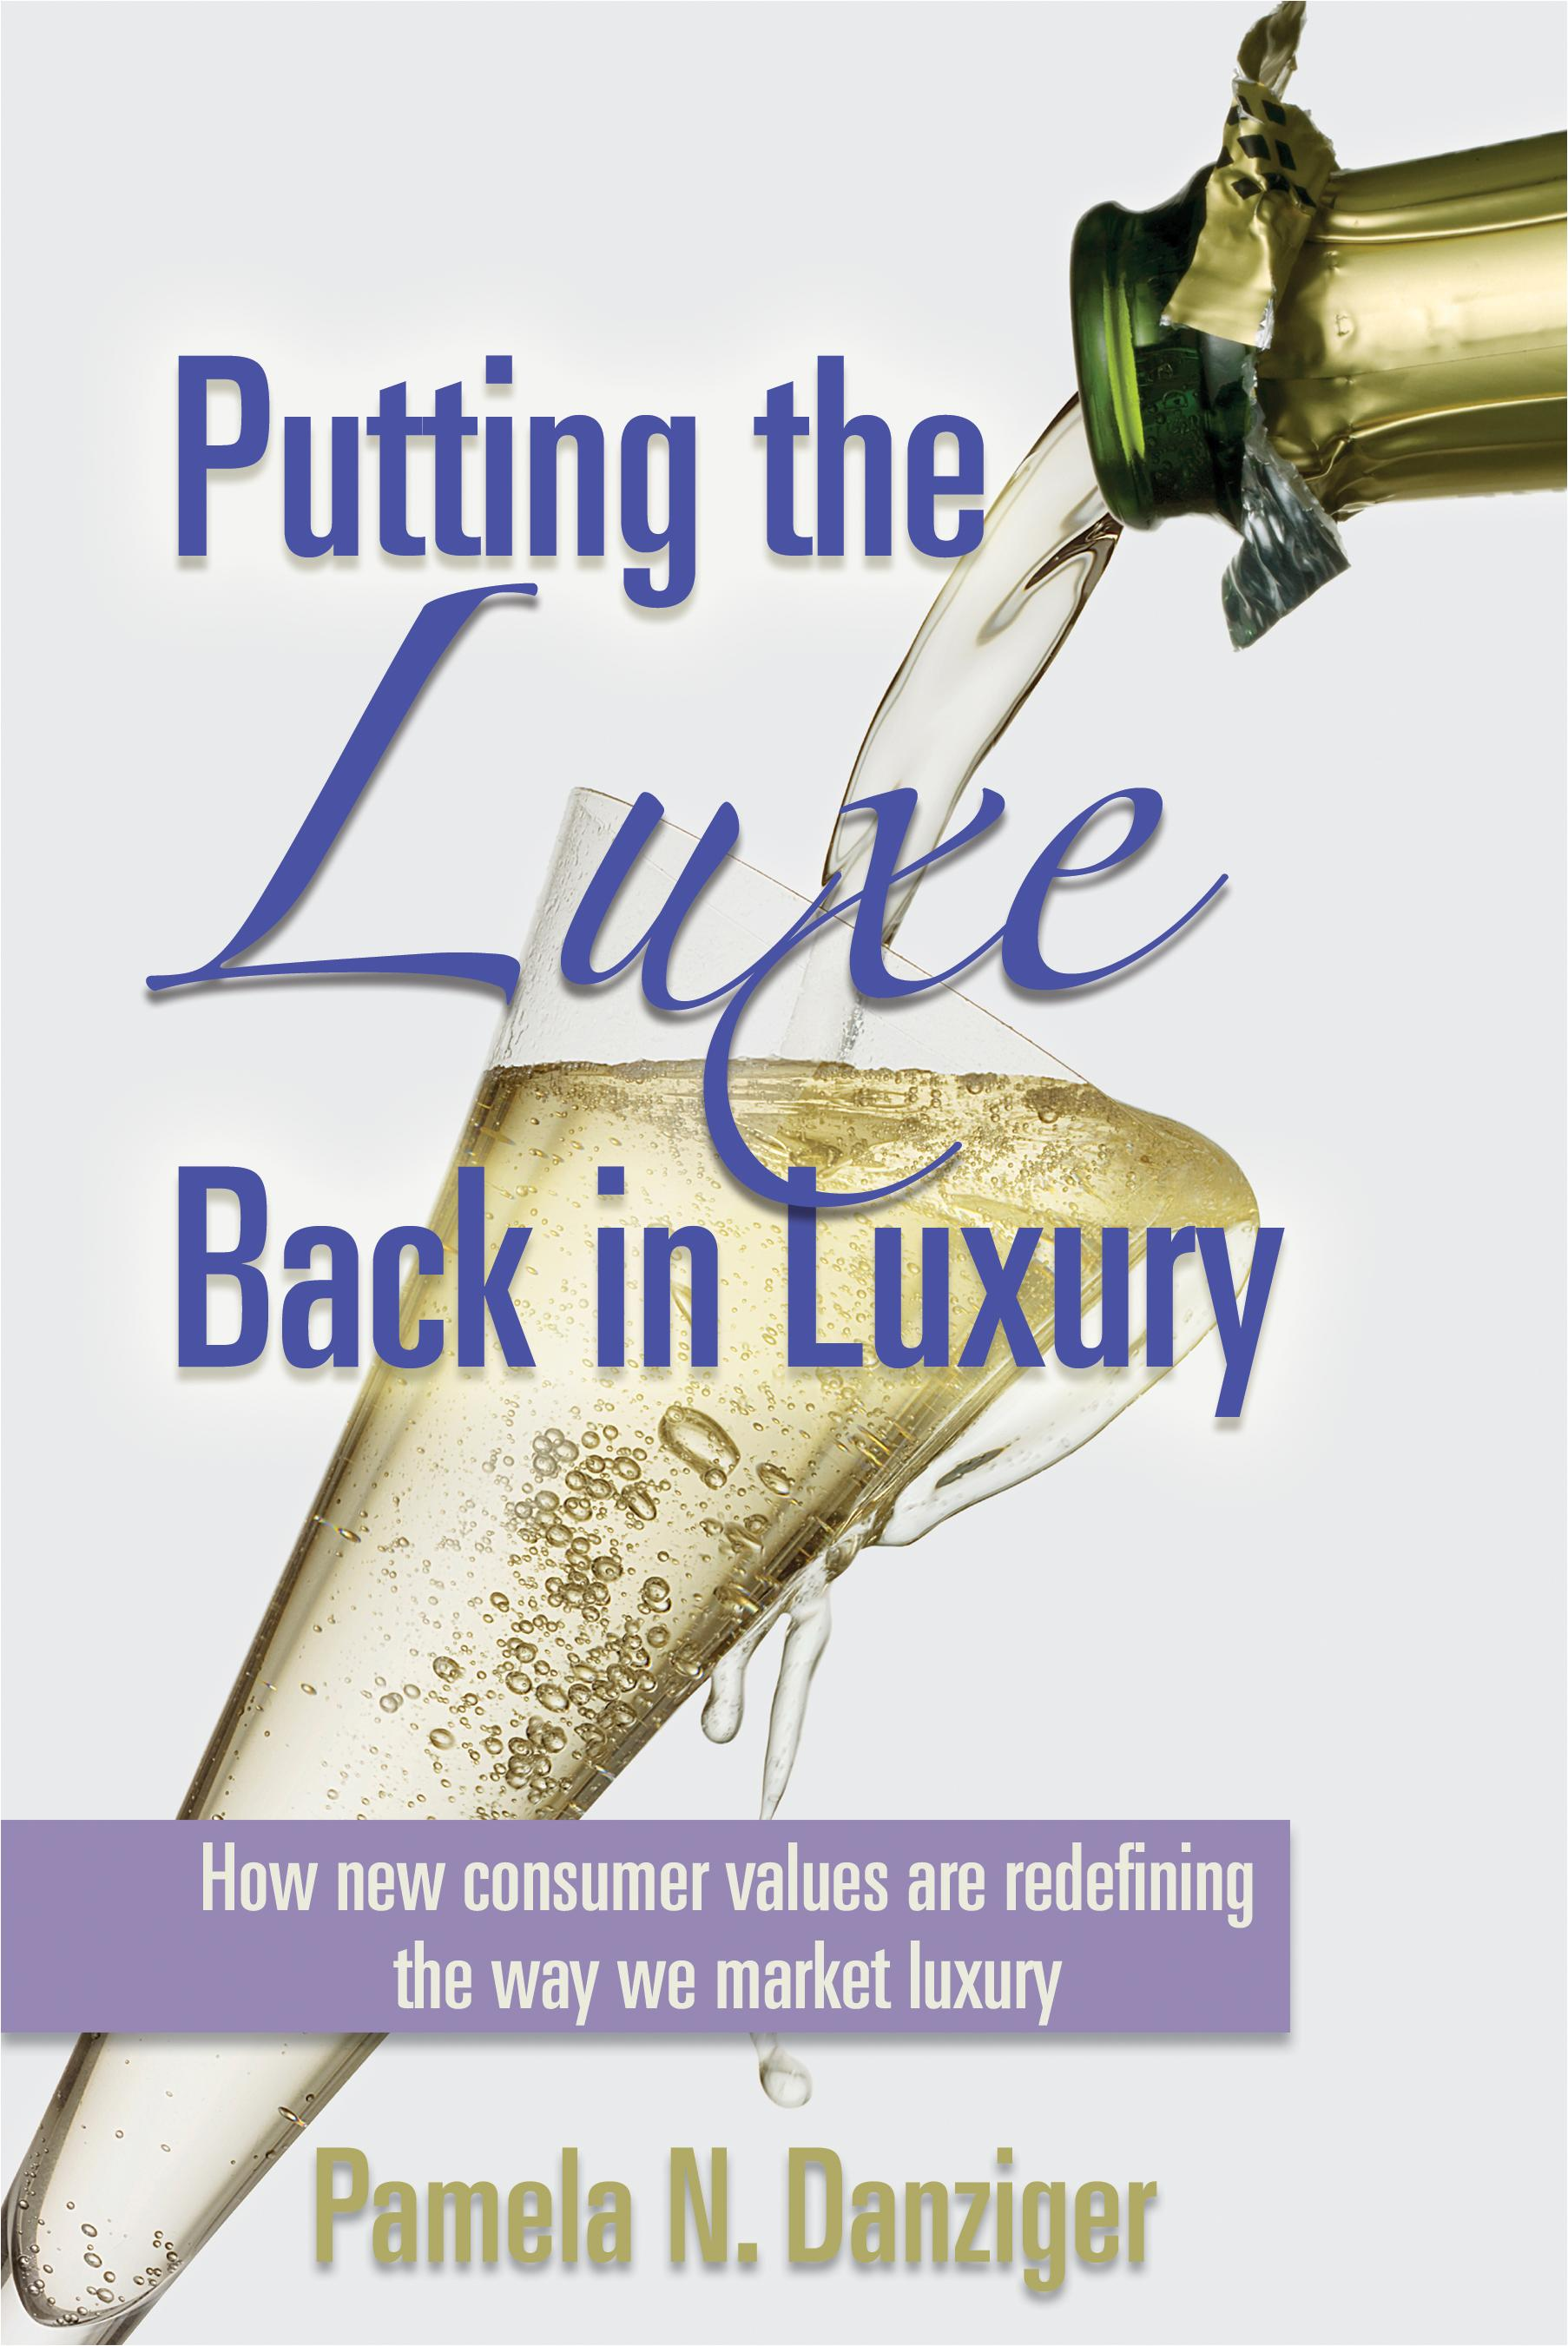 Putting the Luxe Back in Luxary